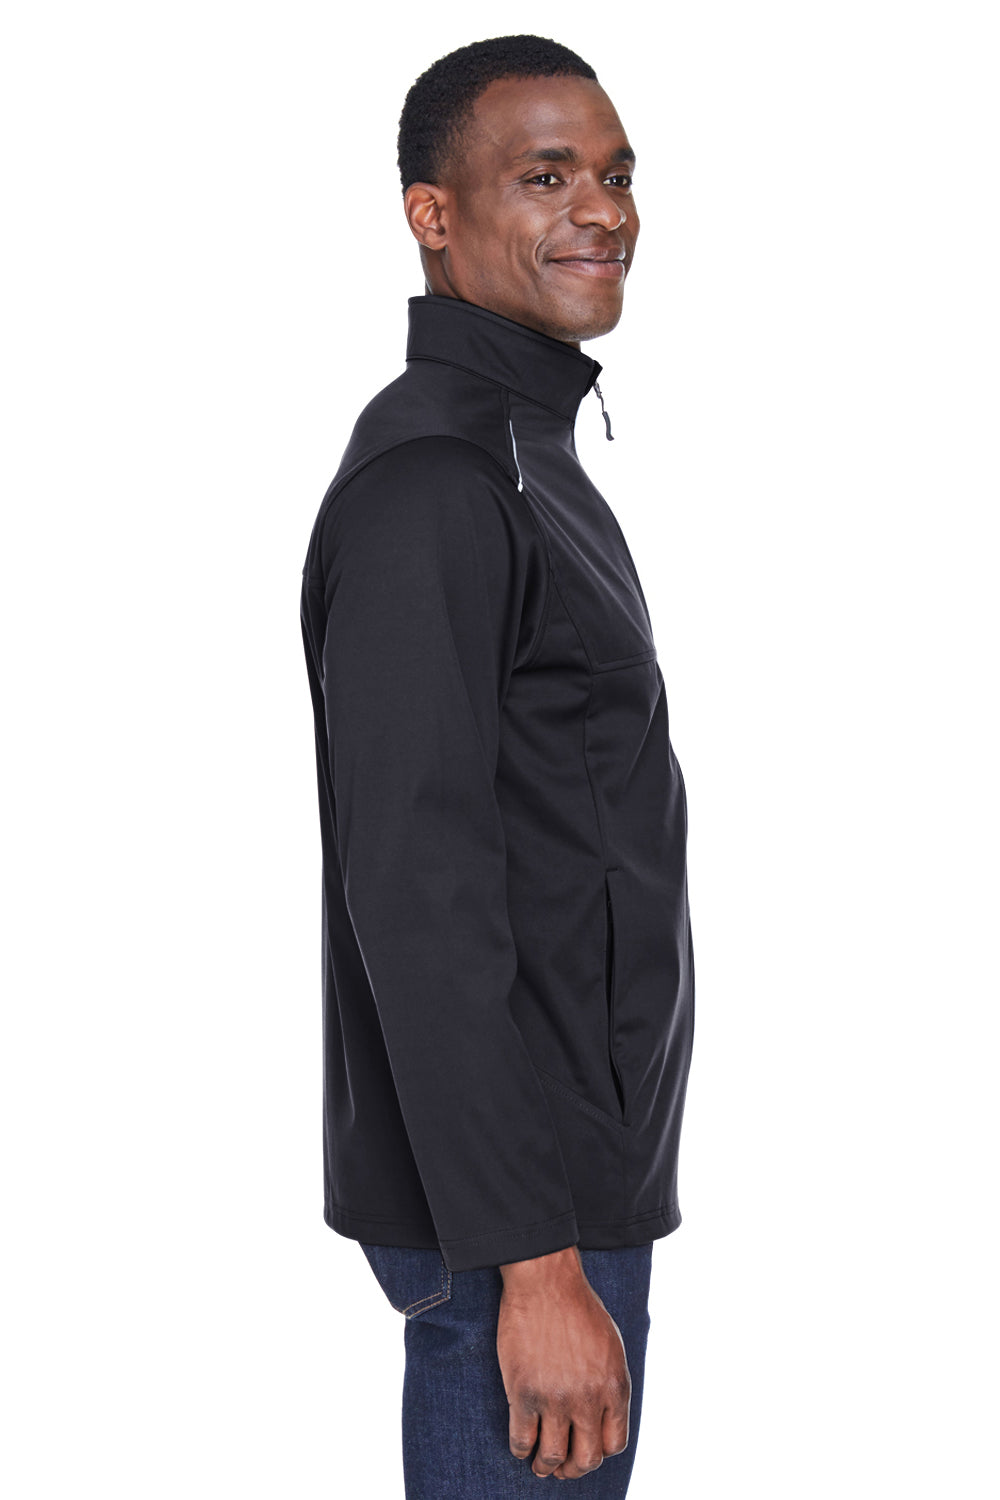 Core 365 CE708 Mens Techno Lite Water Resistant Full Zip Jacket Black Side